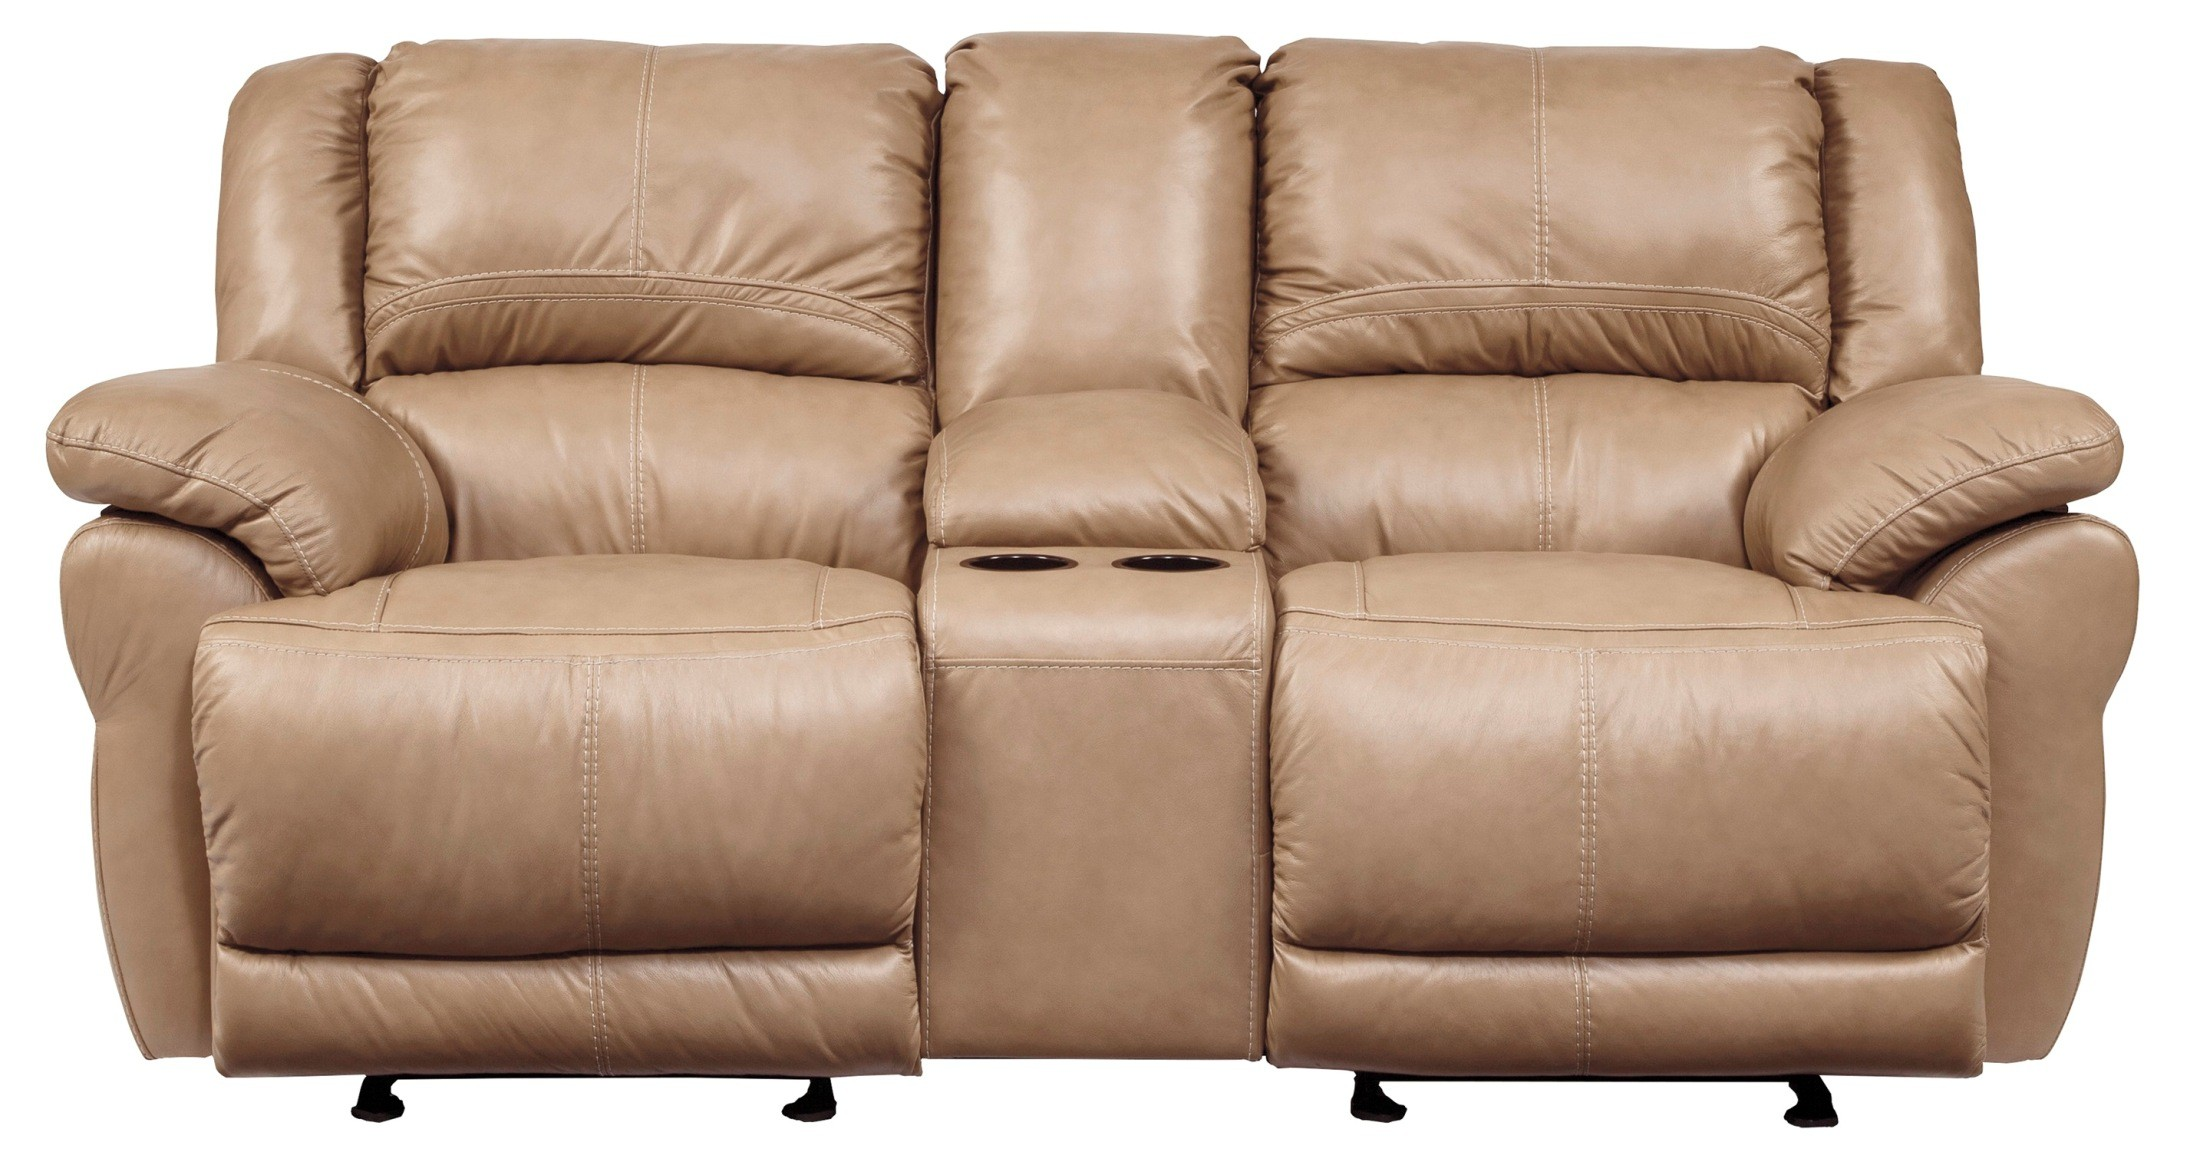 Lenoris Caramel Glider Power Reclining Loveseat With Console U9890491 Ashley Furniture